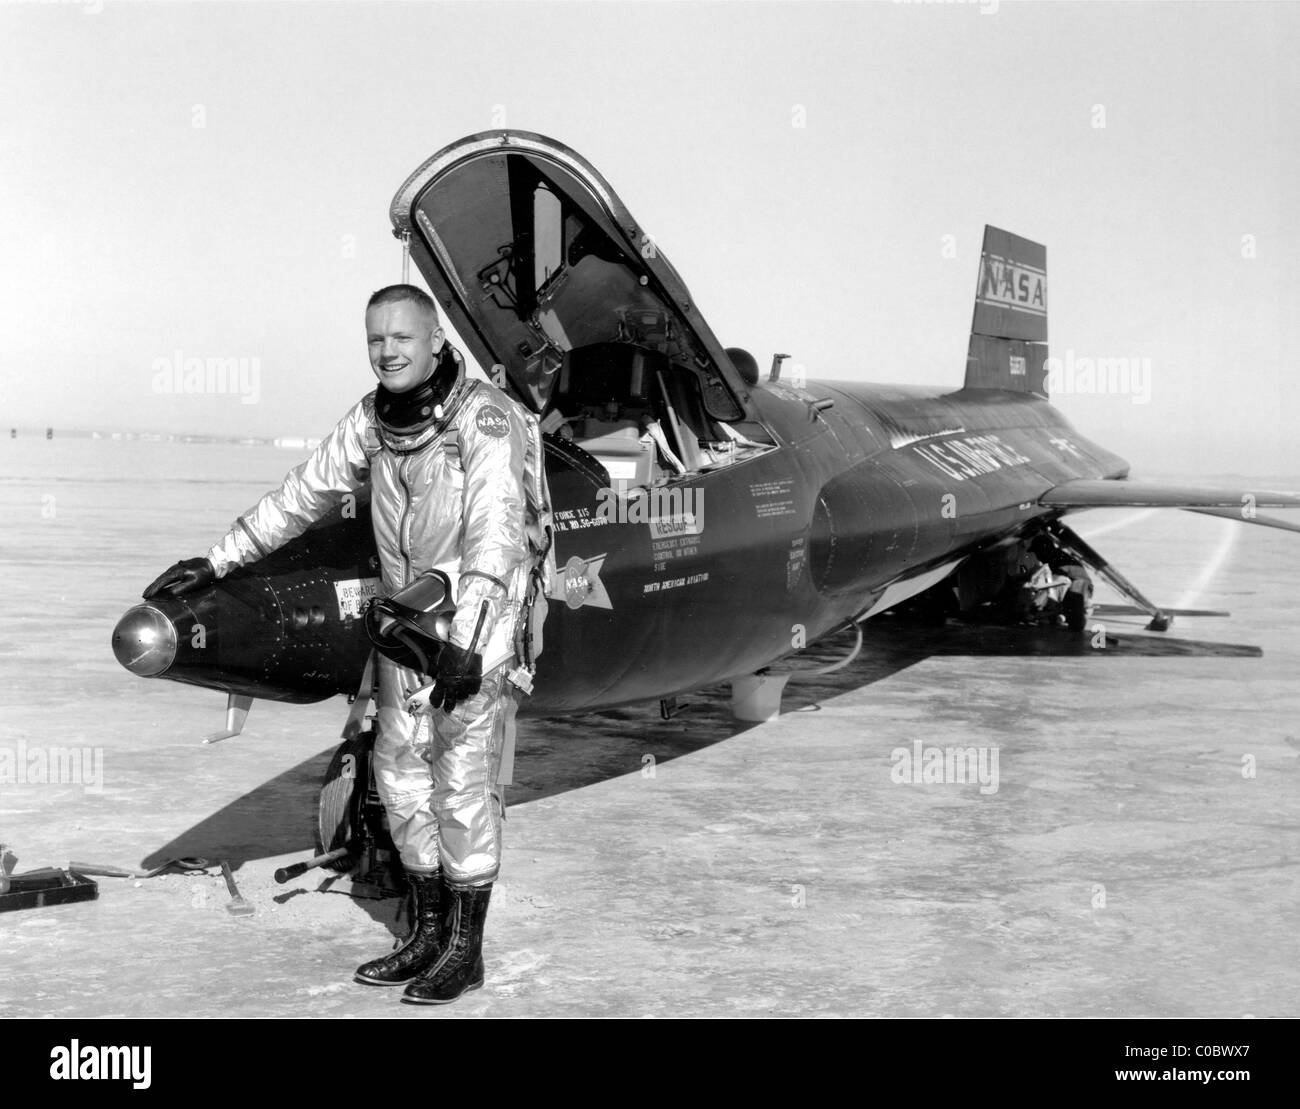 Neil Armstrong next to the X-15 rocket-powered research aircraft. - Stock Image